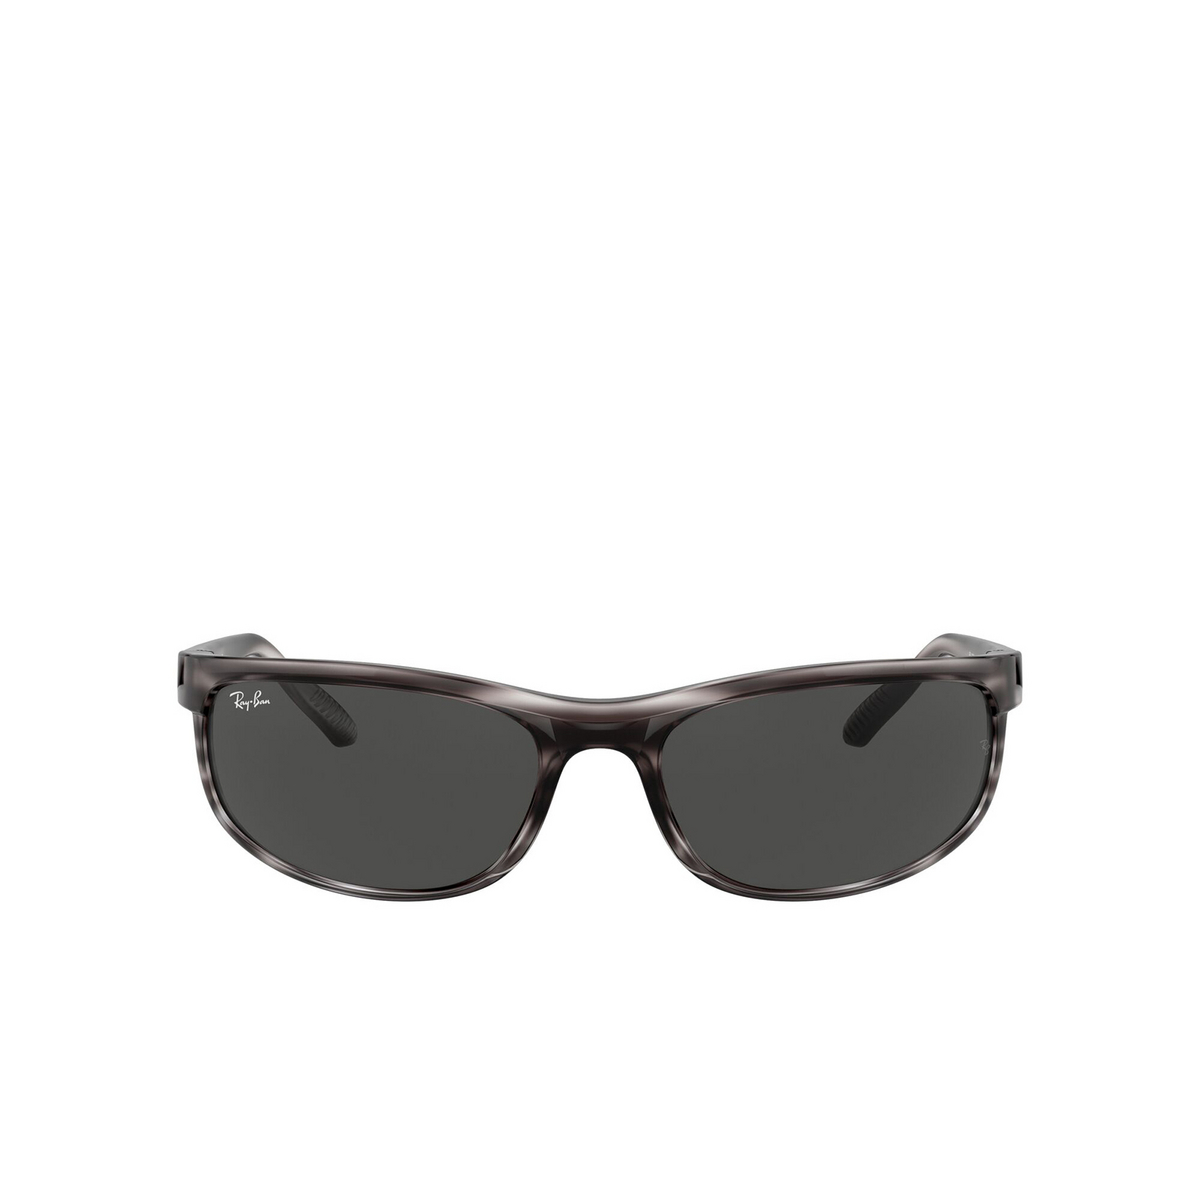 Ray-Ban® Rectangle Sunglasses: Predator 2 RB2027 color Striped Grey Havana 6430B1 - front view.